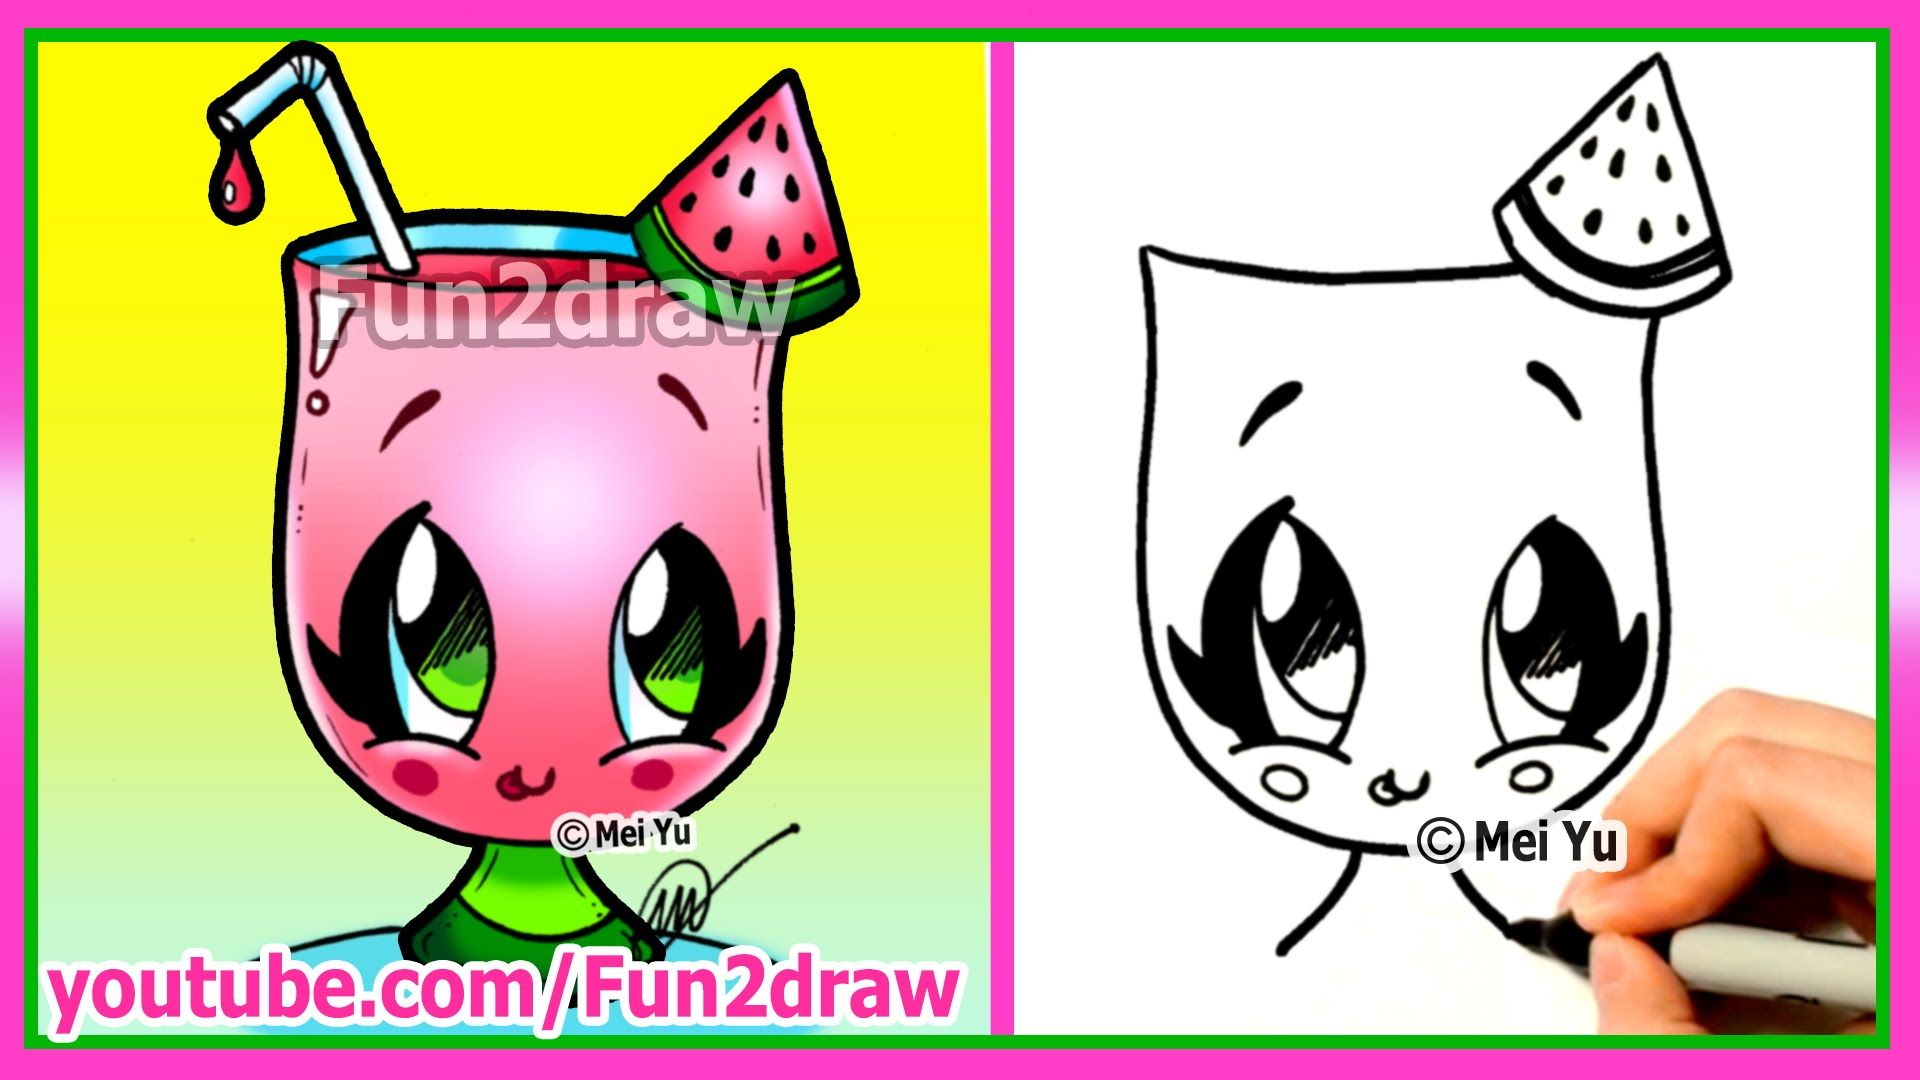 How To Draw Cartoons Drawing Art For Kids Summer Watermelon Drink Cute Easy Food Fun2draw Cartoon Drawings Watermelon Drawing Cute Food Drawings